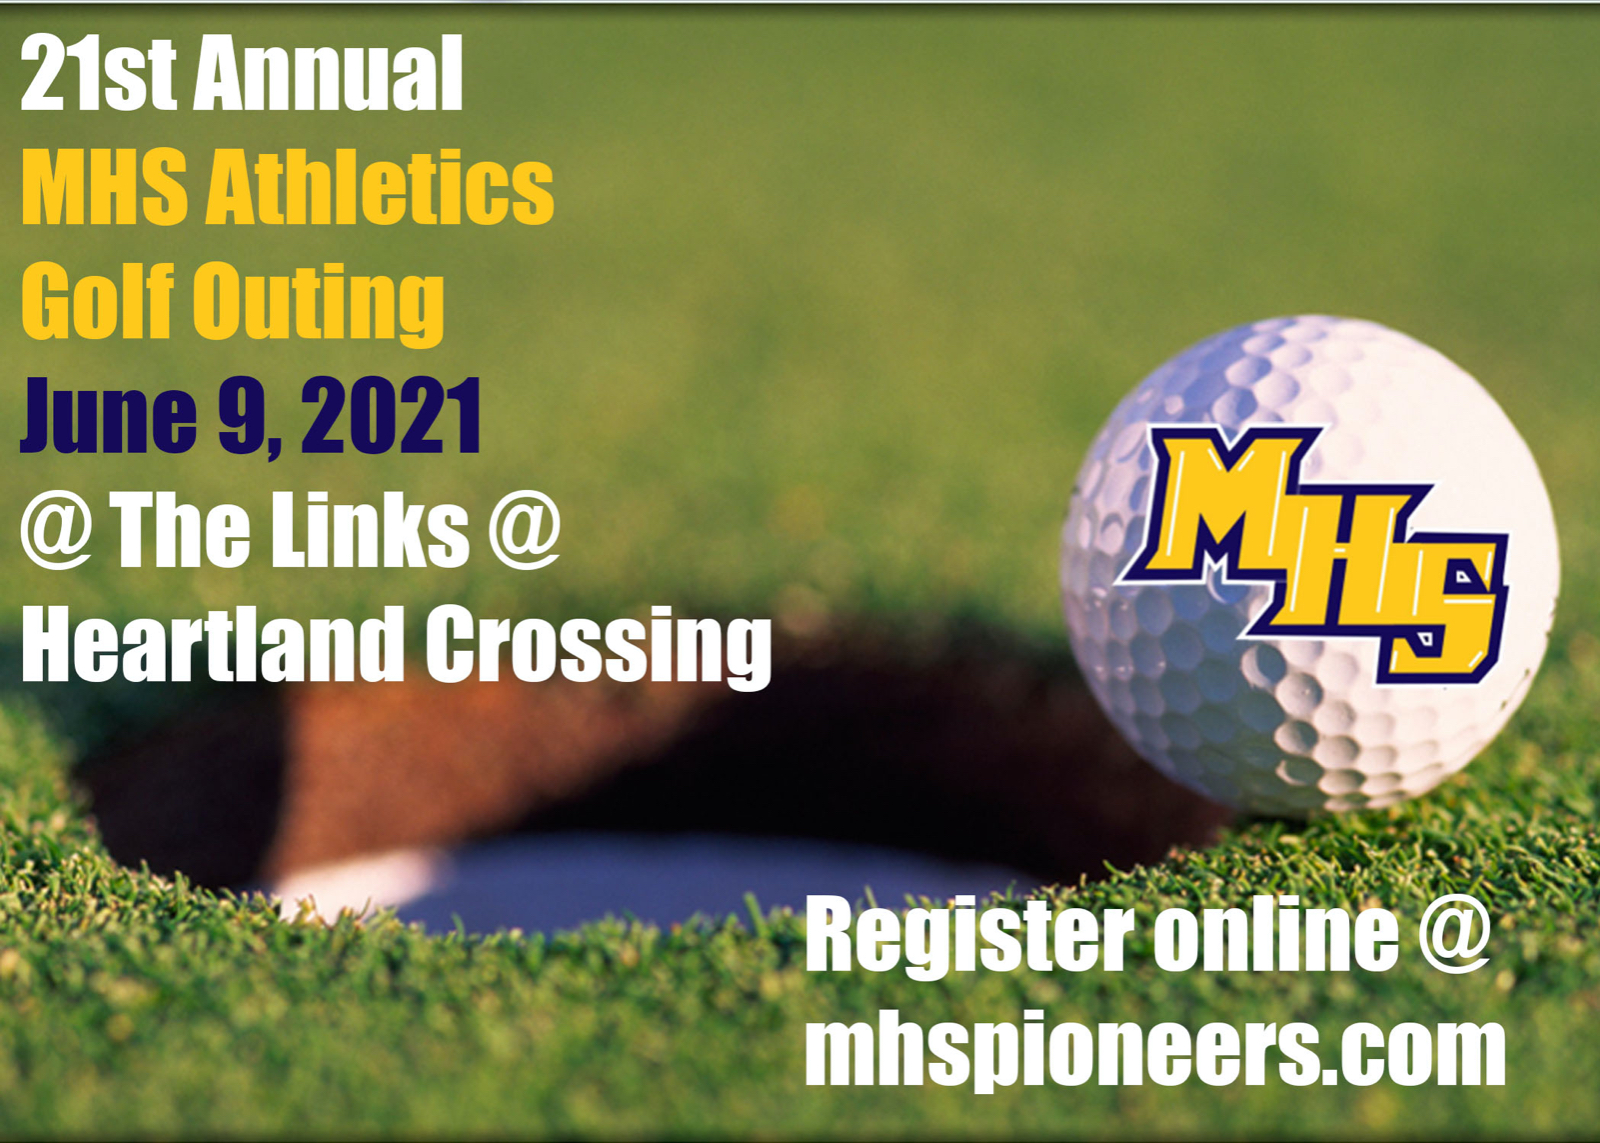 21st Annual MHS Athletics Golf Outing